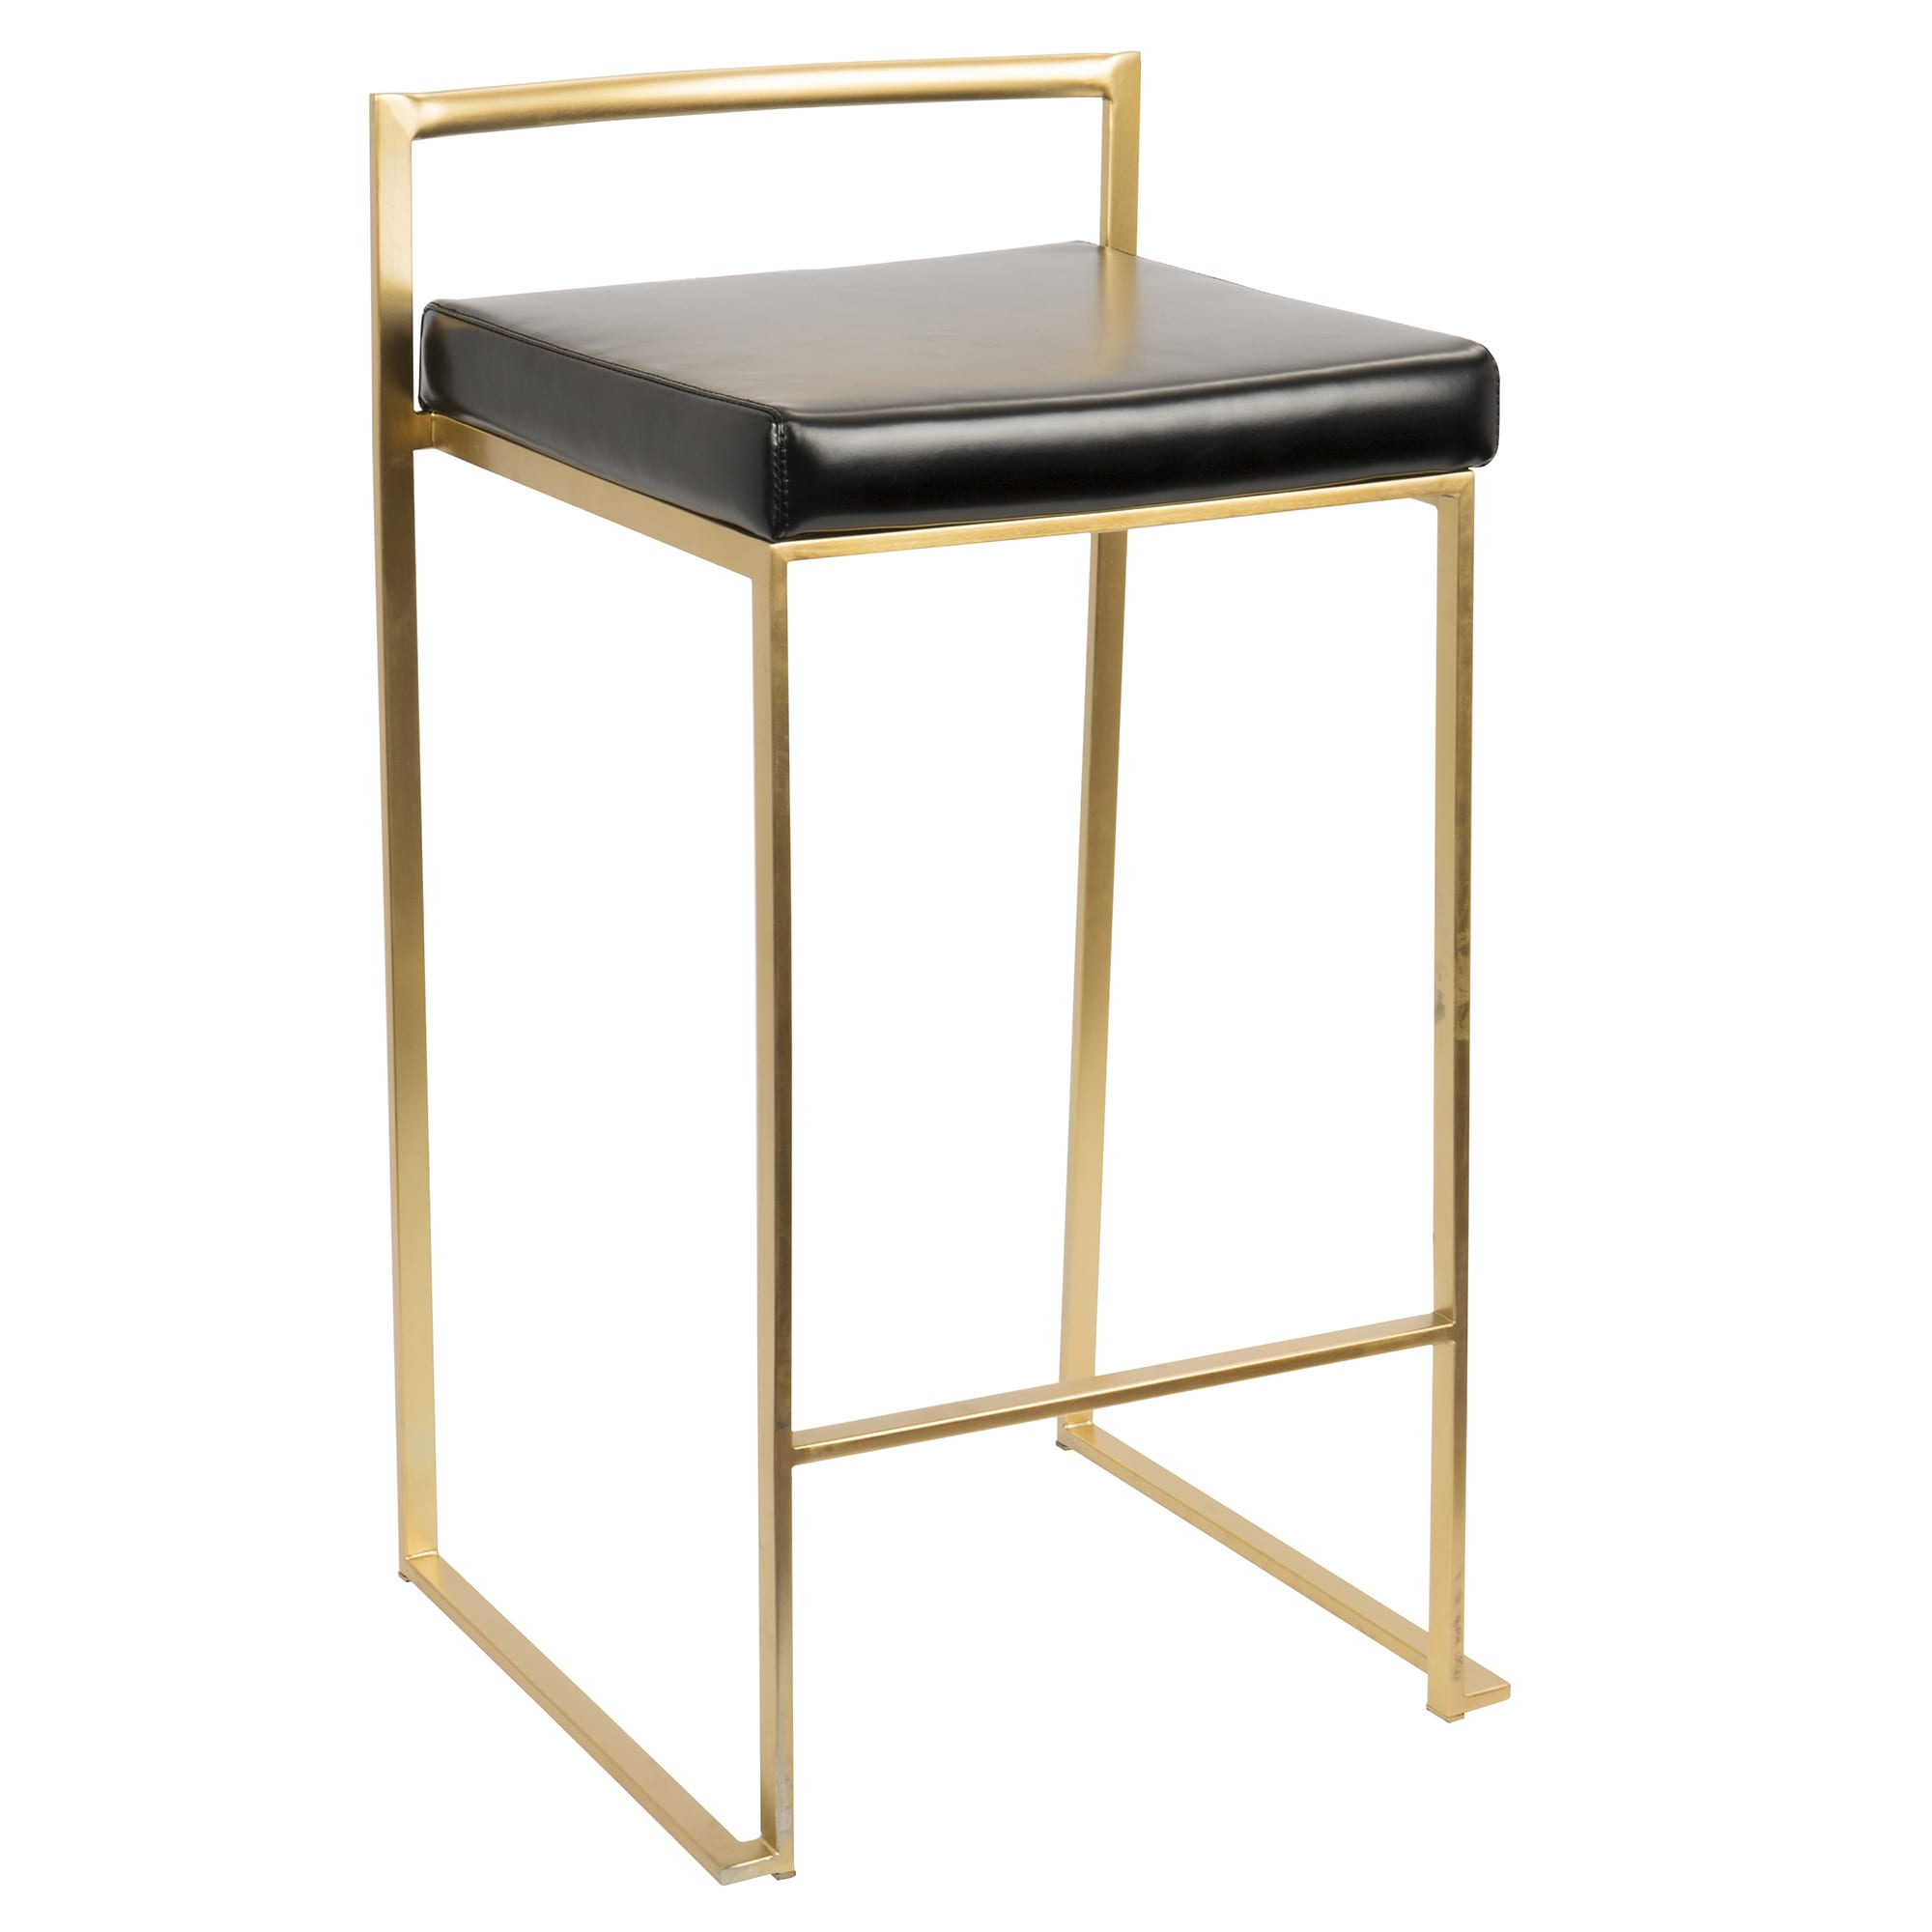 stool full inch linon norwood ikeastackable stackable free striking picture metal foralestackable stools walmart bentwoodtackabletoolet ideas sale for of wenge bartools size kids